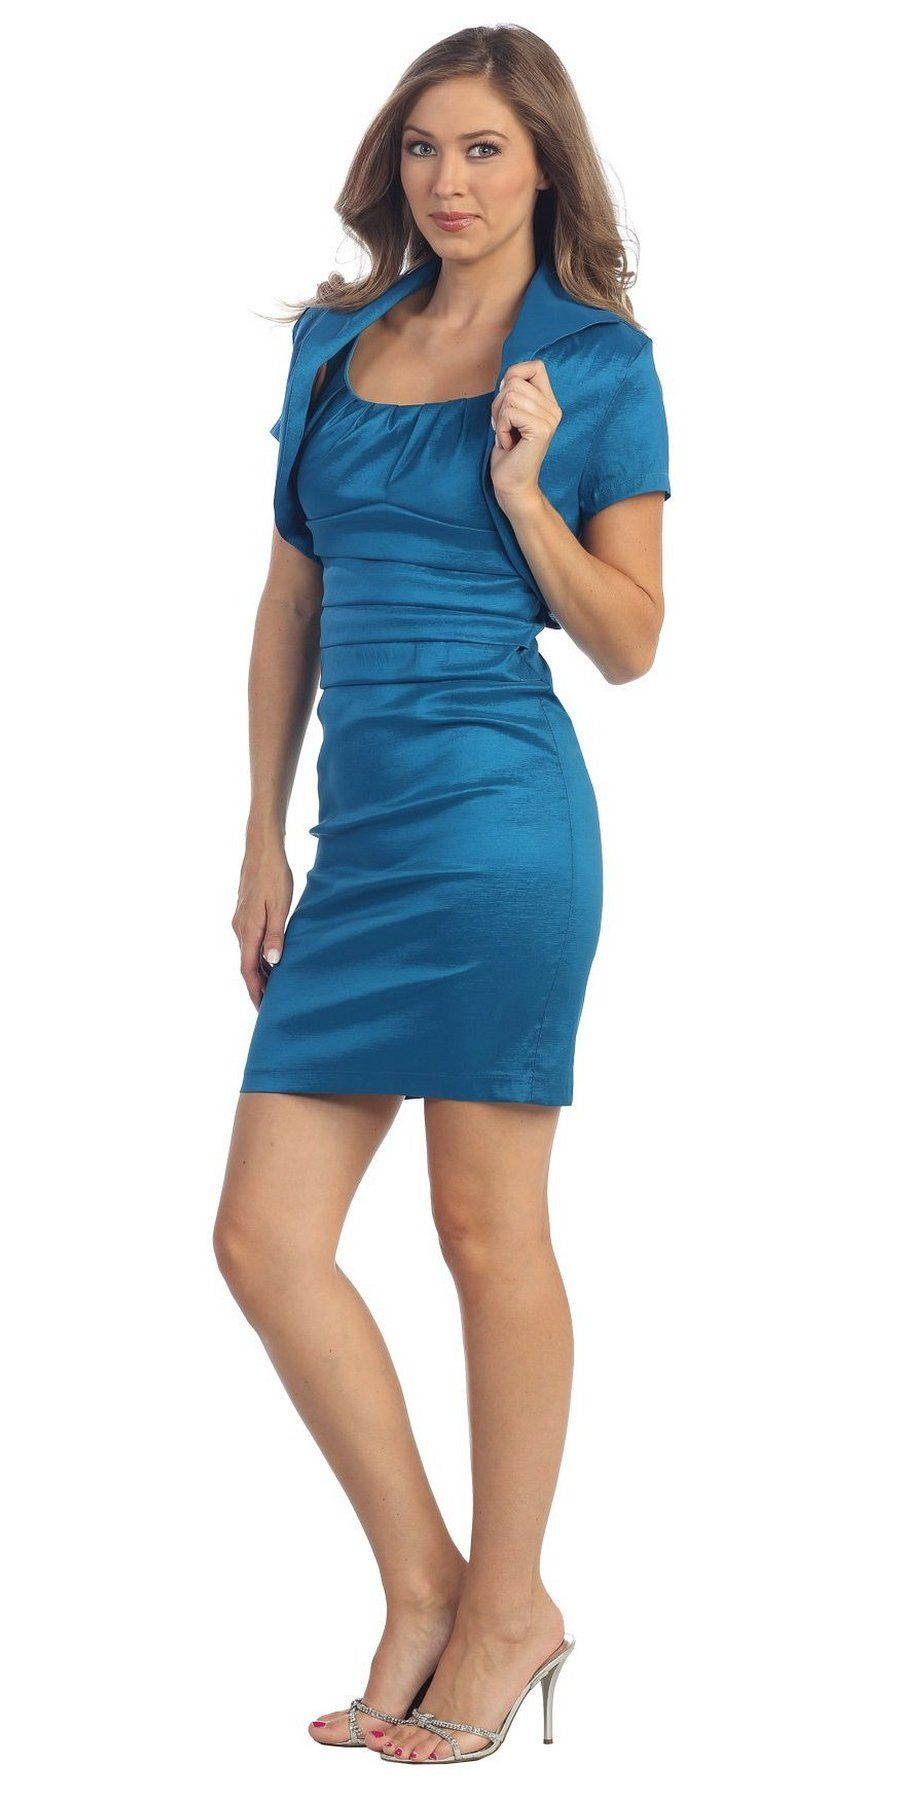 Clearance simple short teal blue dress fitted tight includes